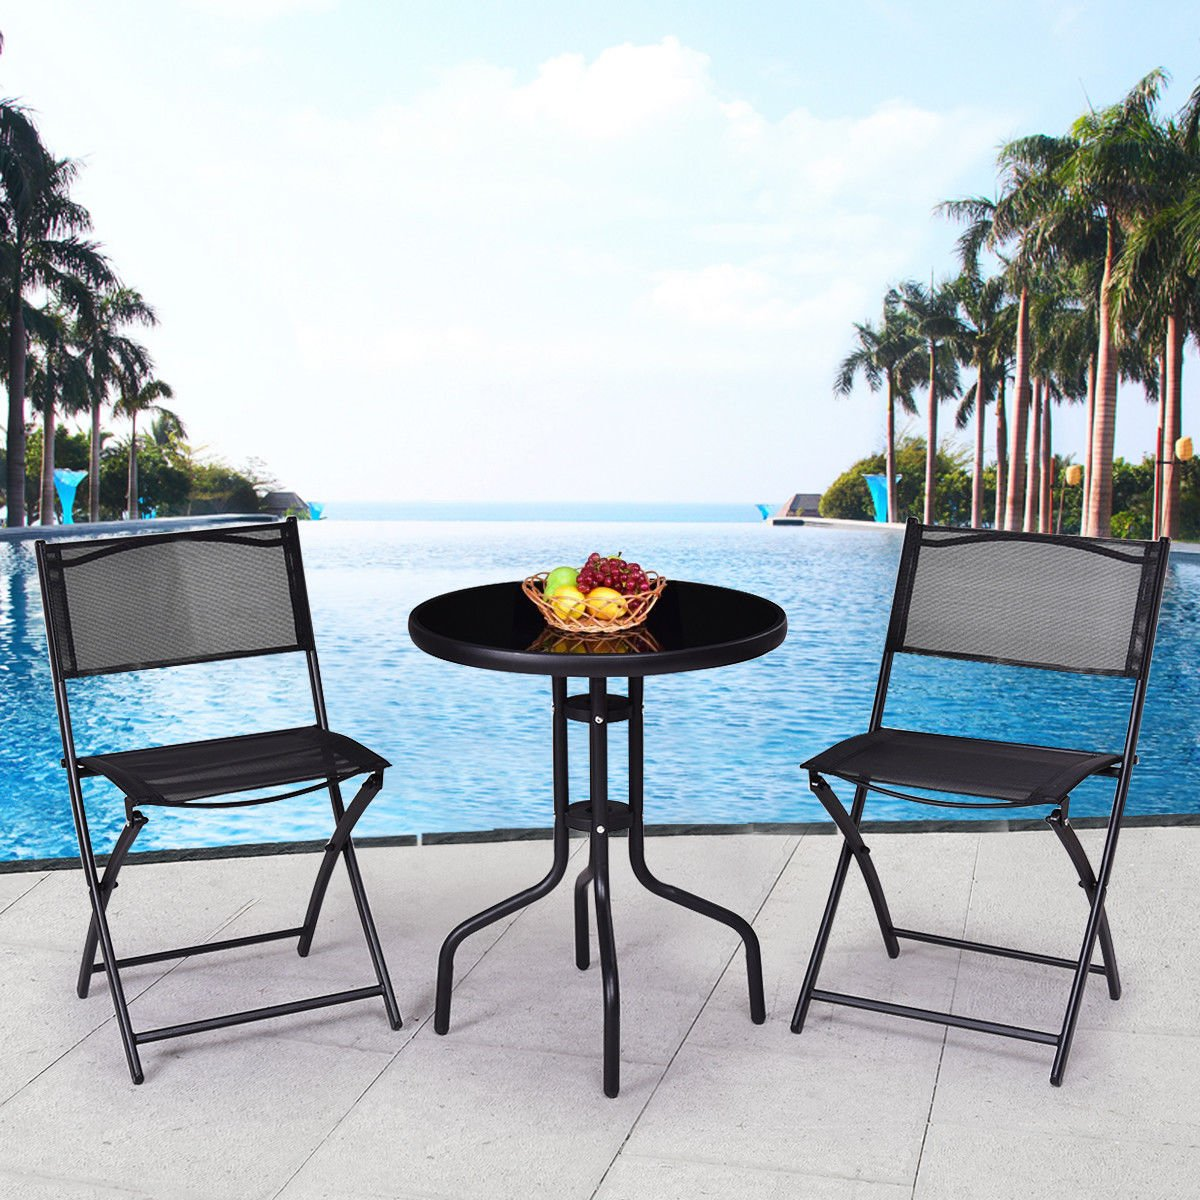 3 Pcs Bistro Set Garden Backyard Table Folding Chairs Outdoor Patio Furniture